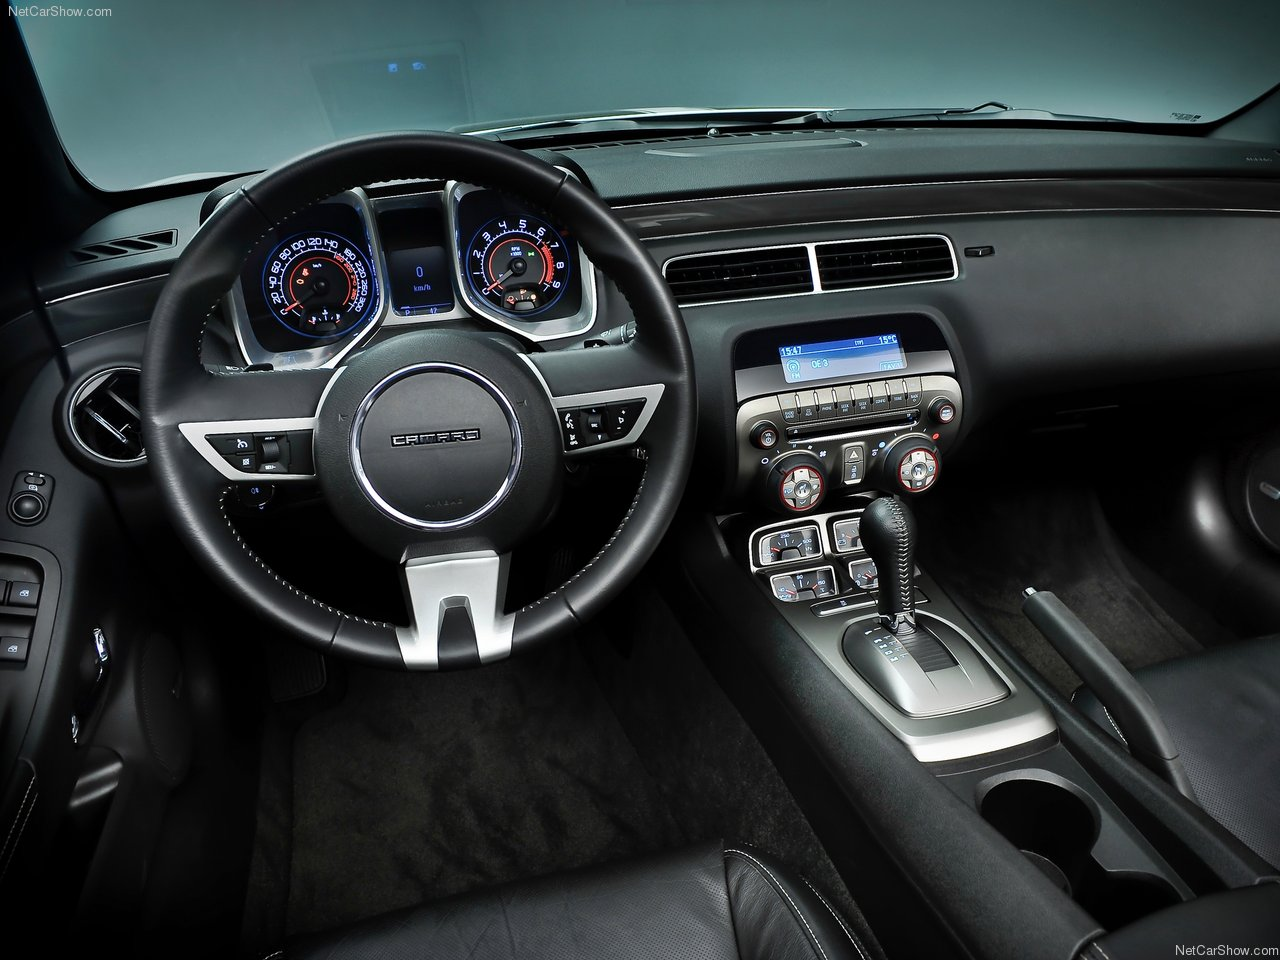 2012 camaro interior. Black Bedroom Furniture Sets. Home Design Ideas